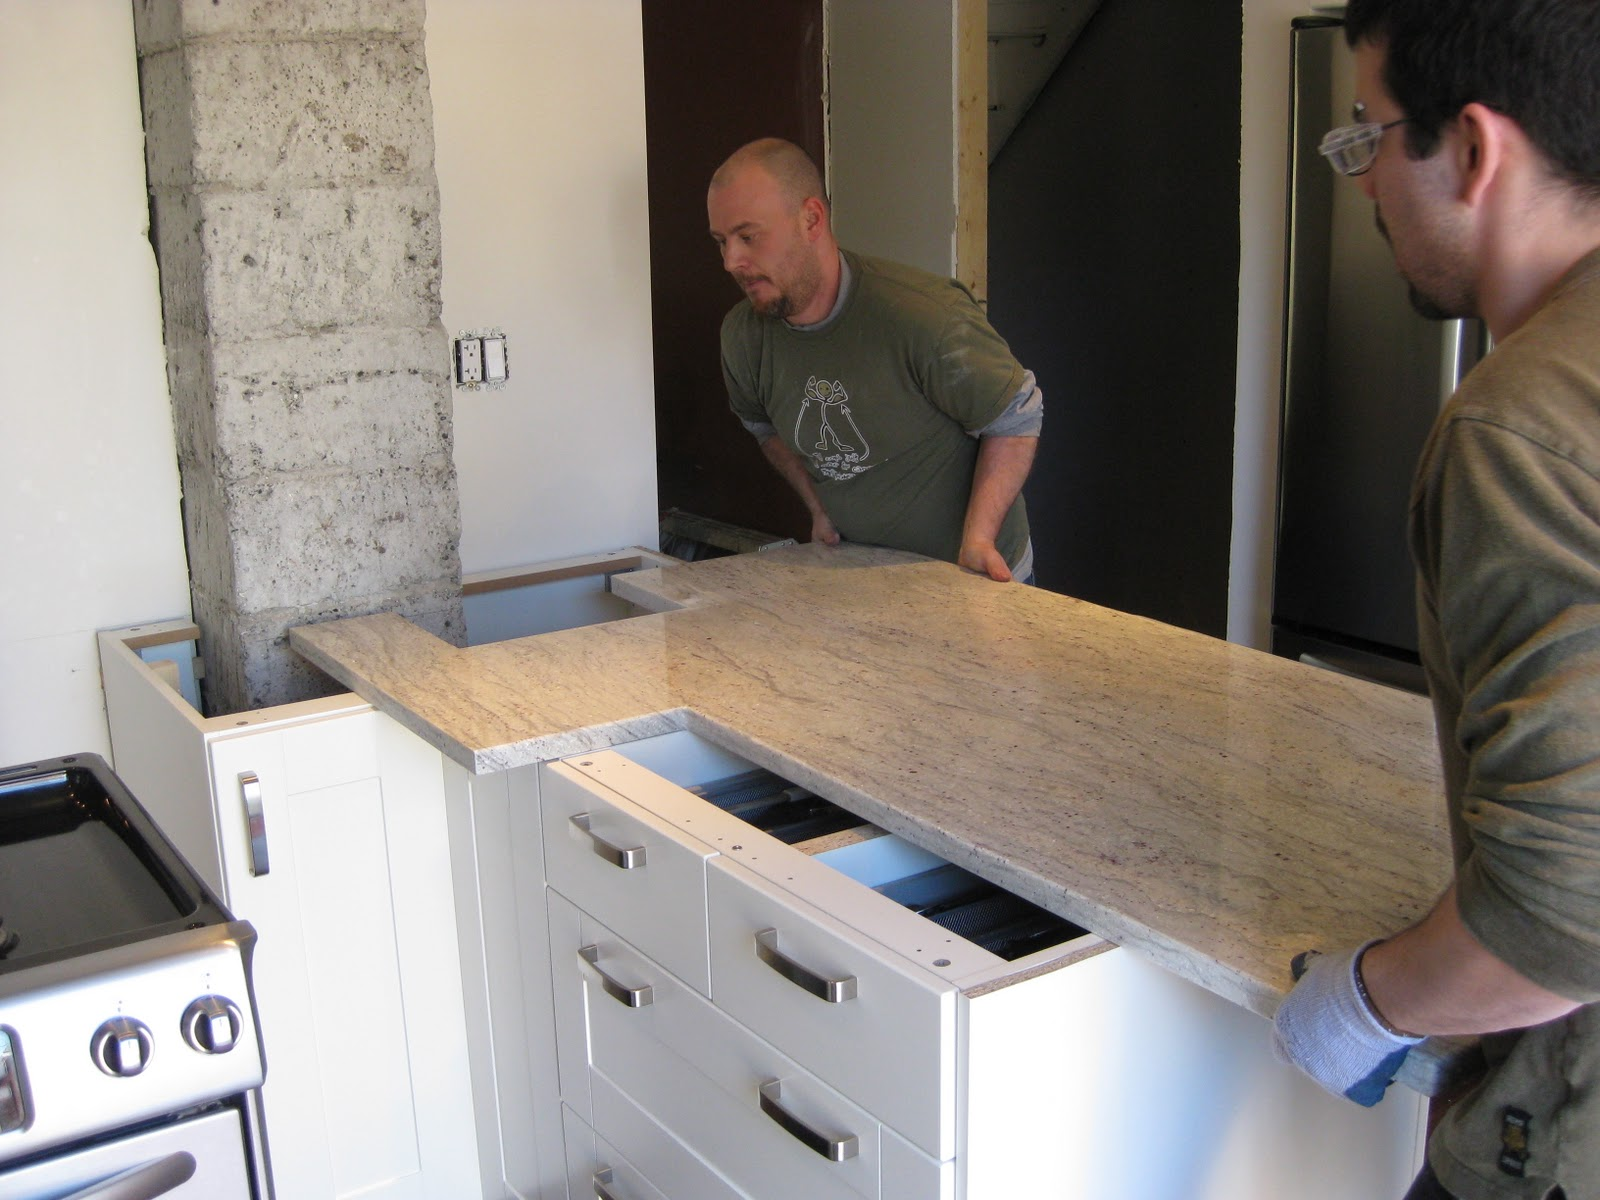 Cost Of Quartz Countertops Installed Adventures At 1628 Kitchen Part Iii